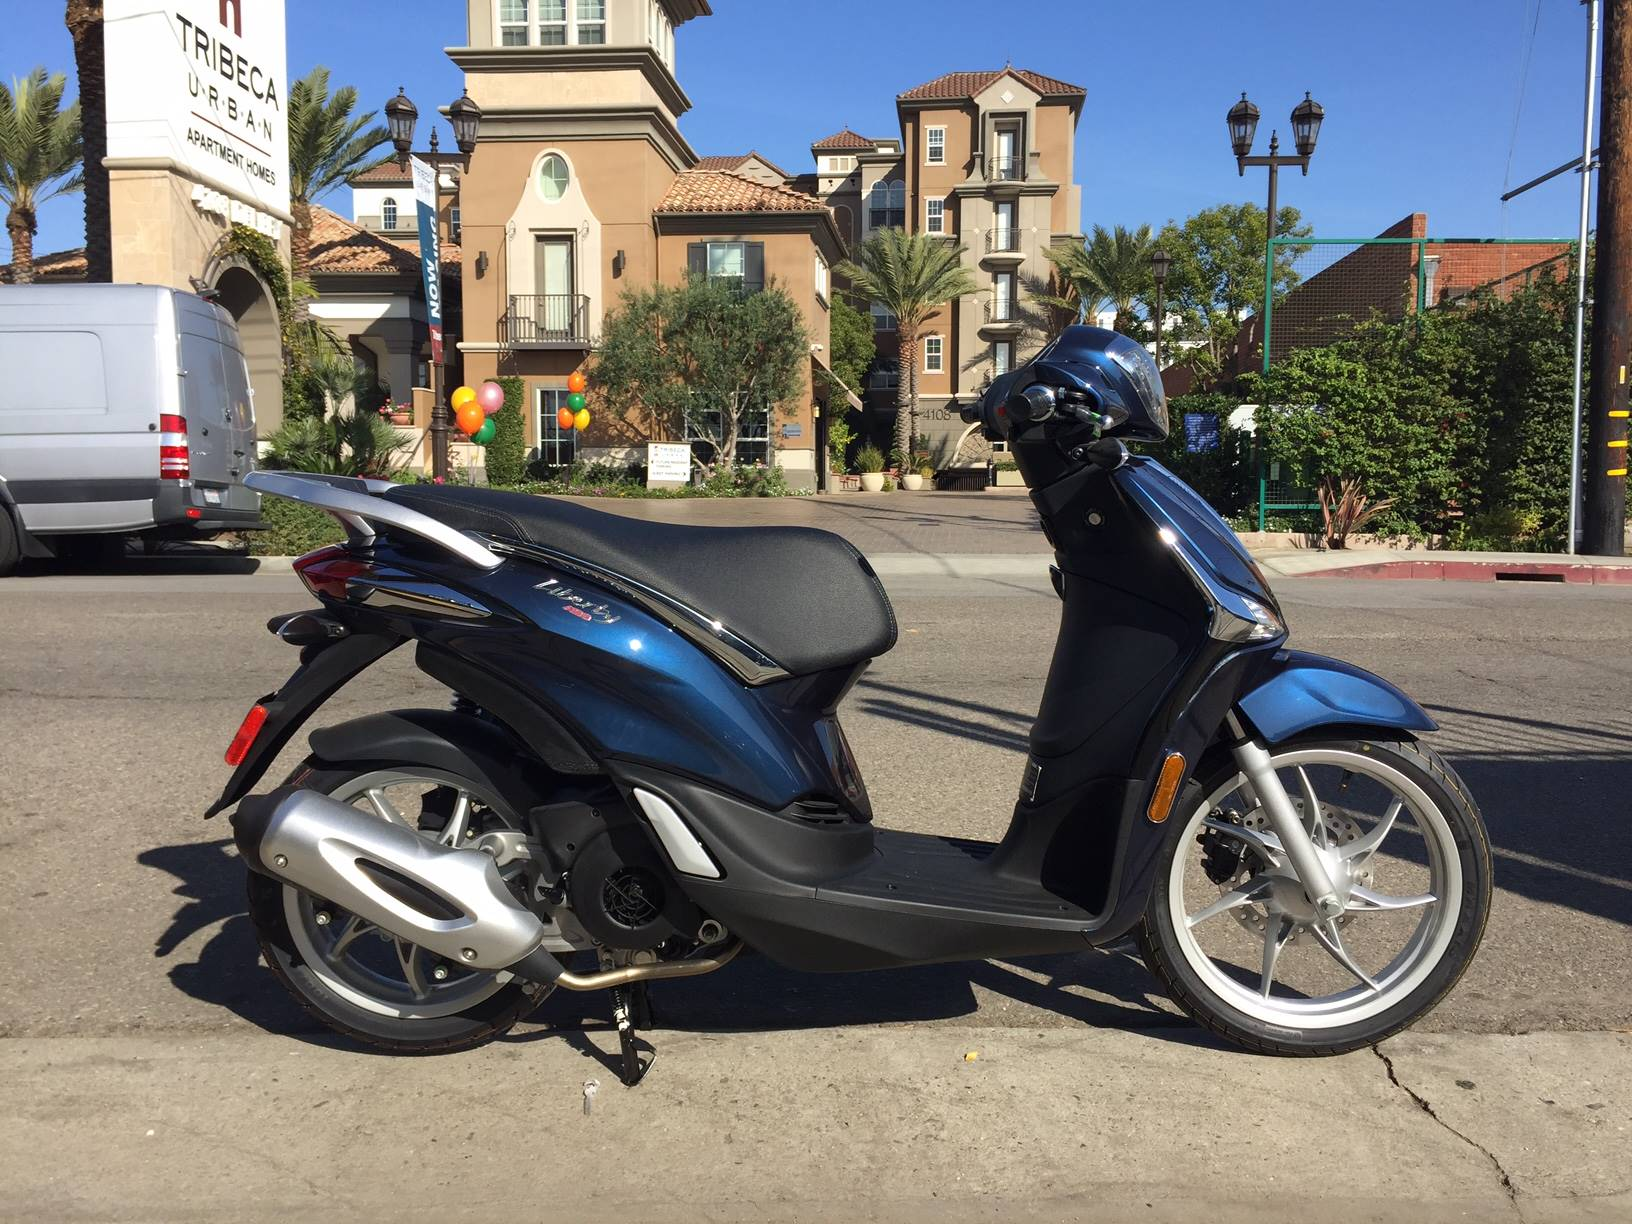 2019 Piaggio Liberty 150 in Marina Del Rey, California - Photo 1